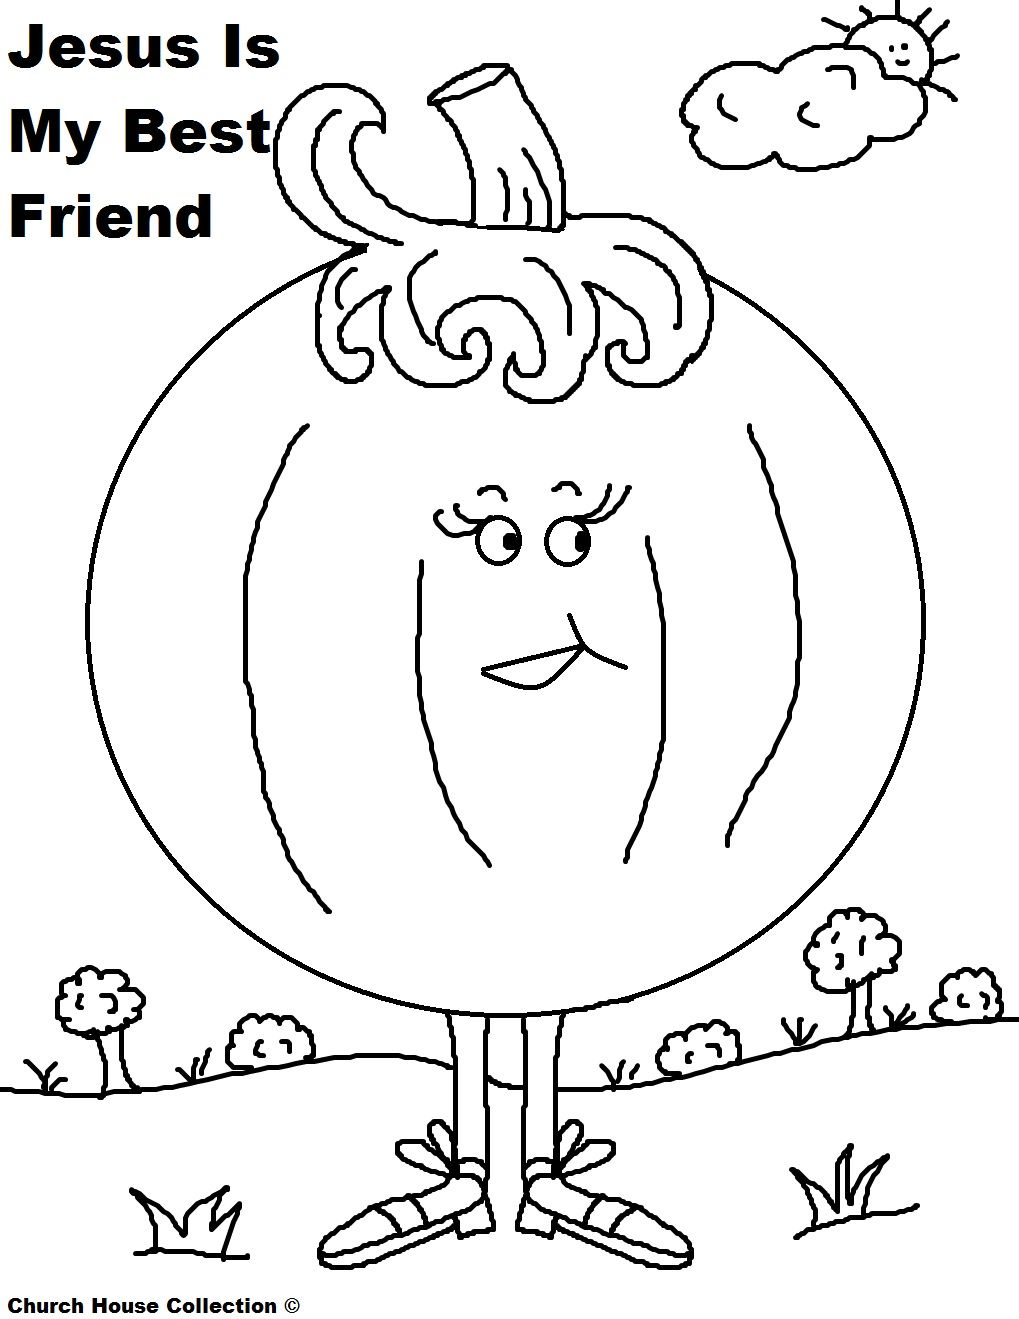 Free Coloring Pages Download Pumpkin Page For Sunday School Kids Jesus Is My Best